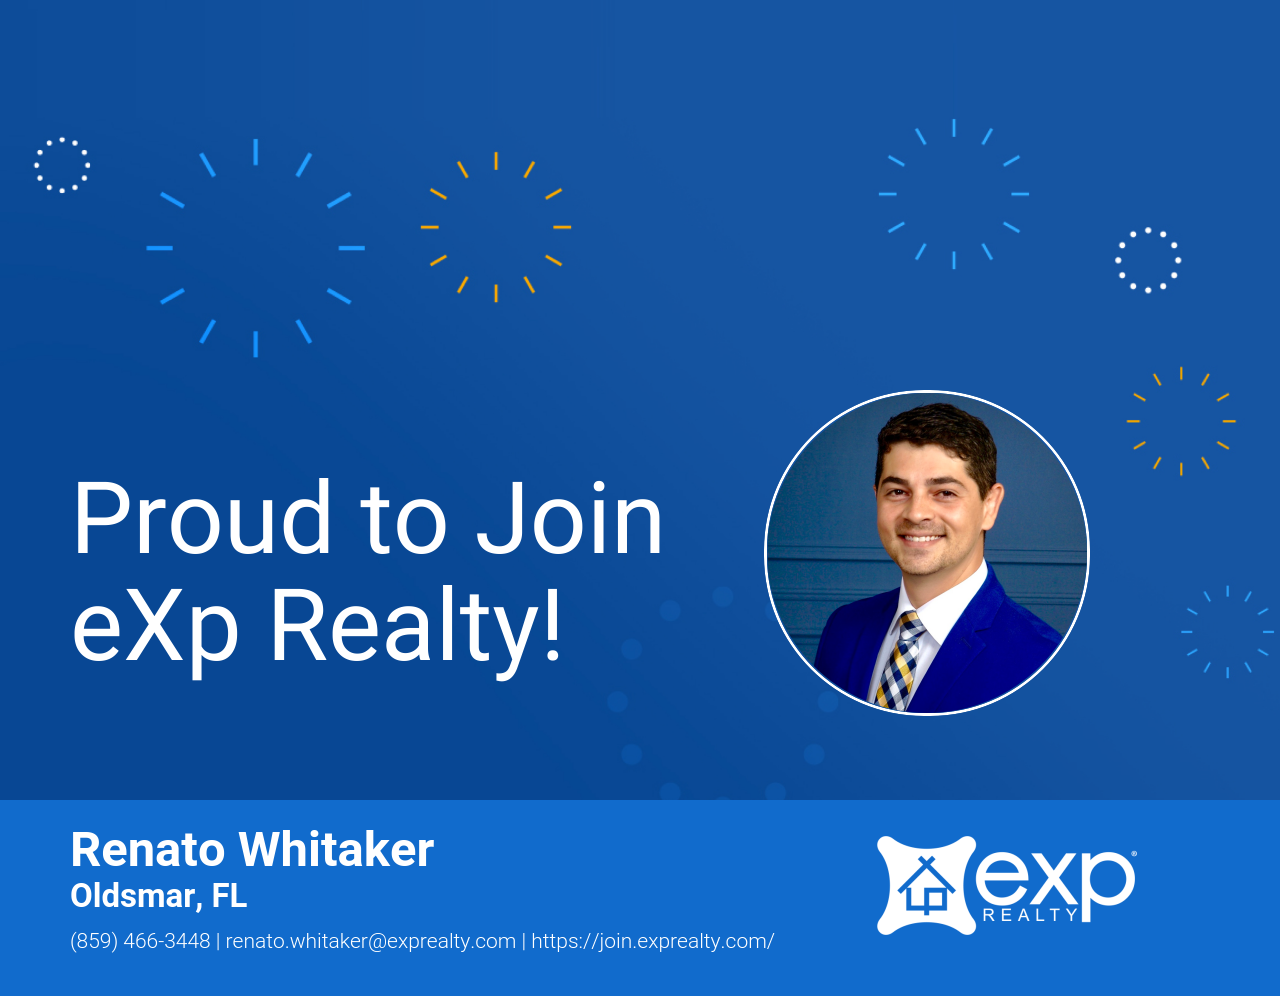 eXp Realty Welcomes Renato Whitaker!